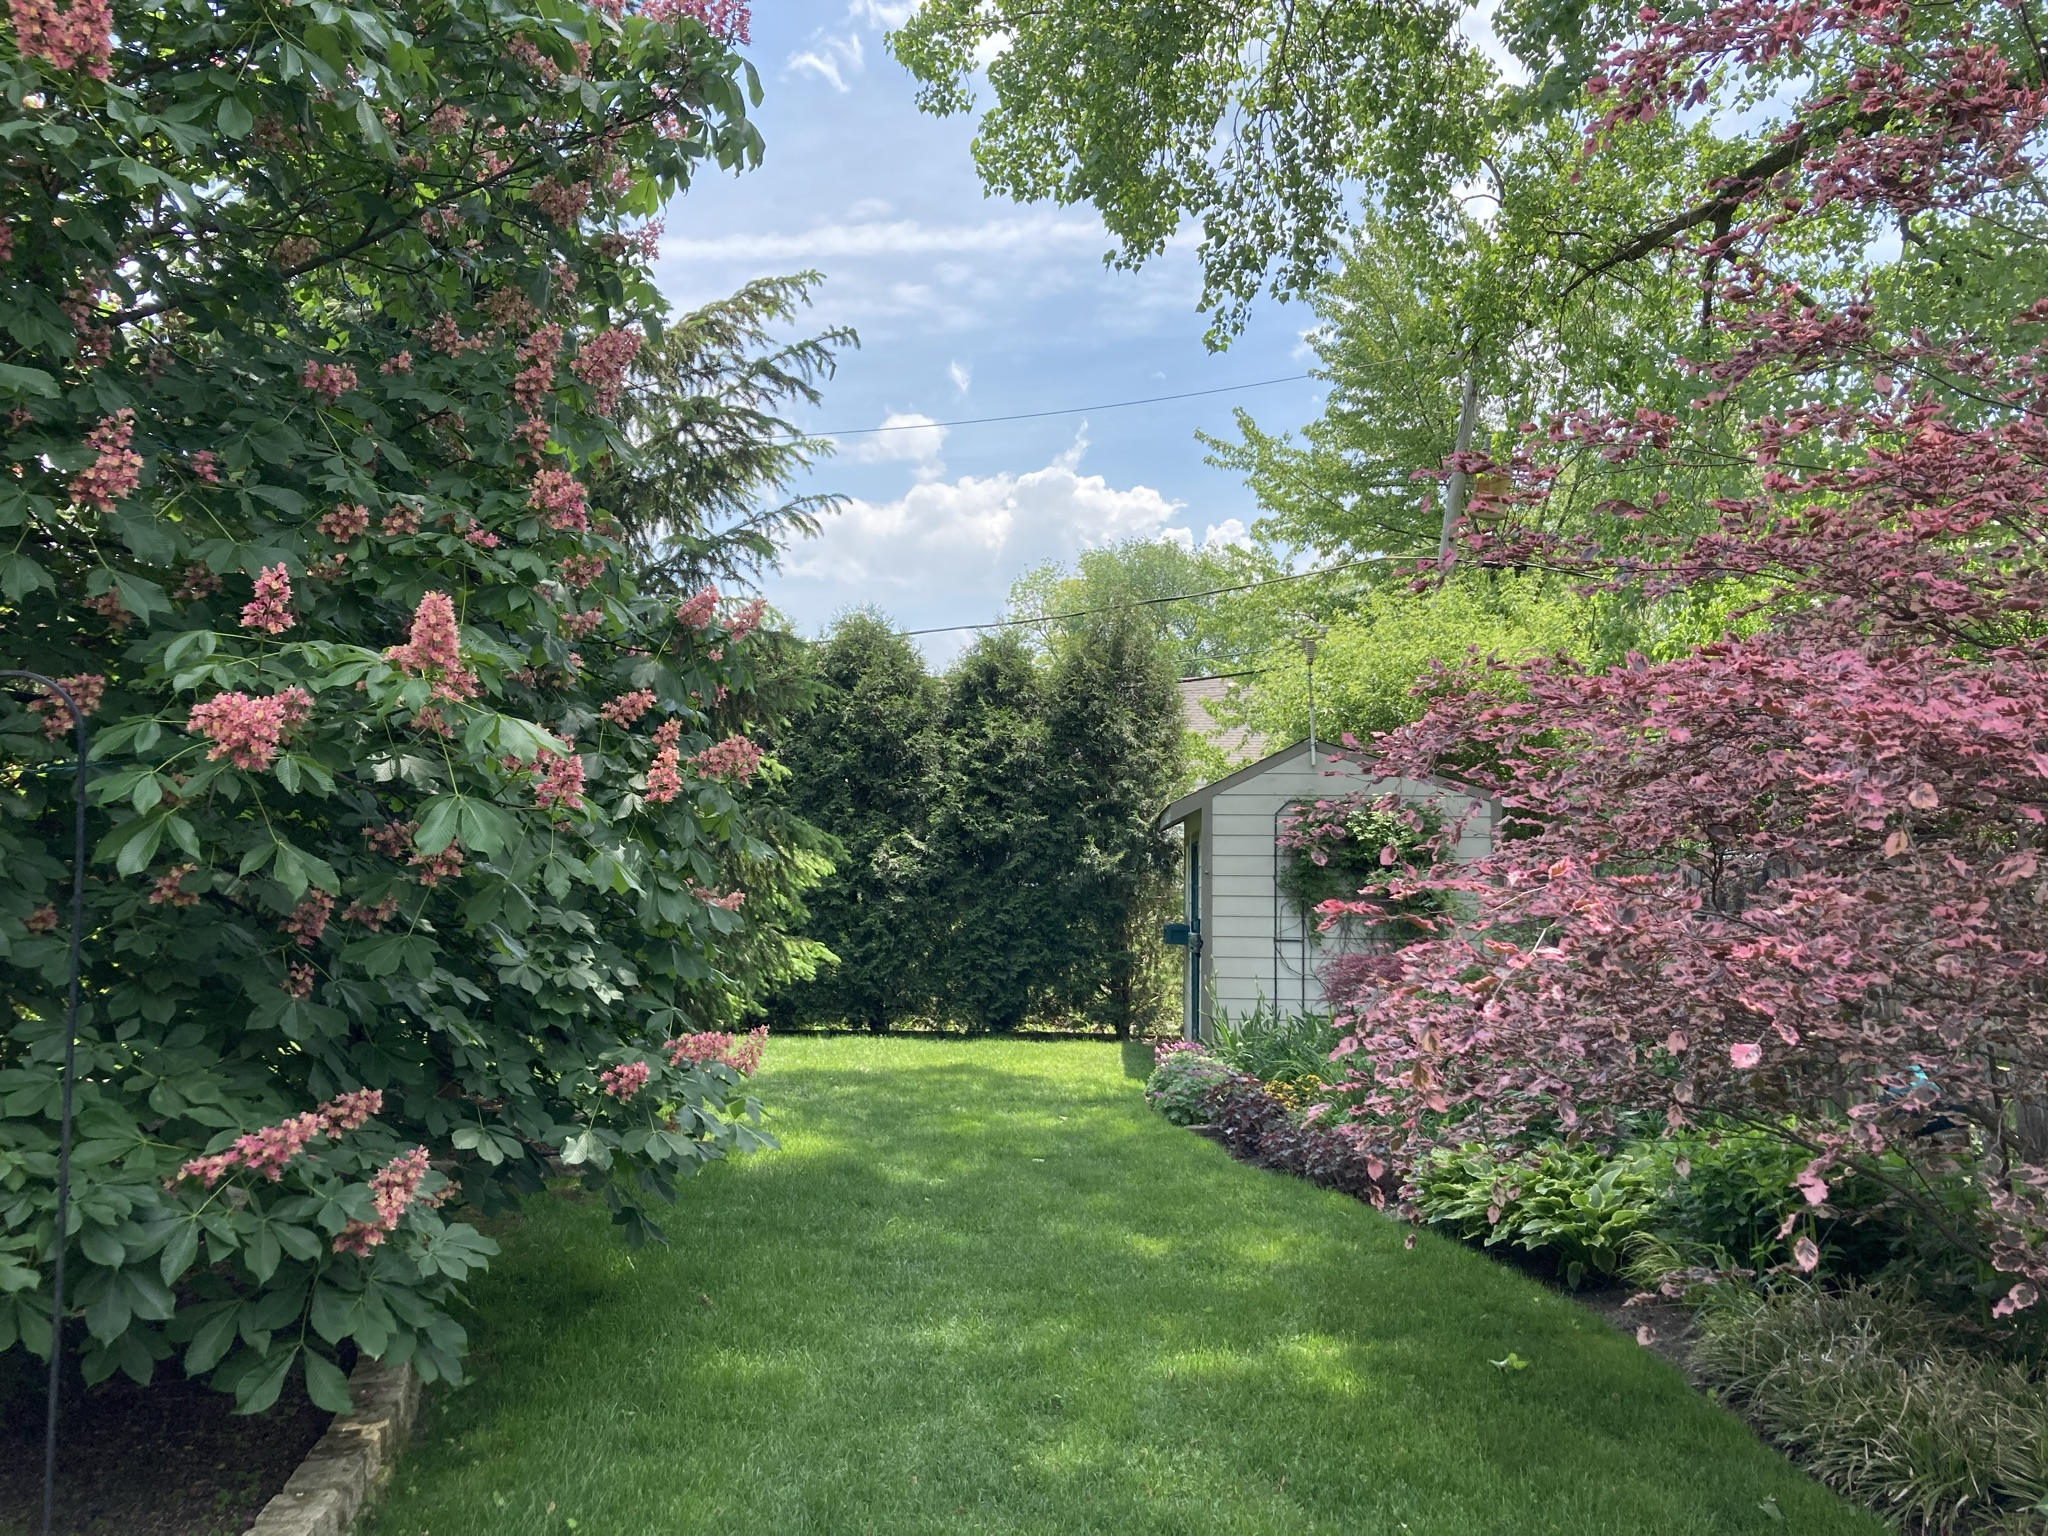 Garden path with pink shrubs on both sides